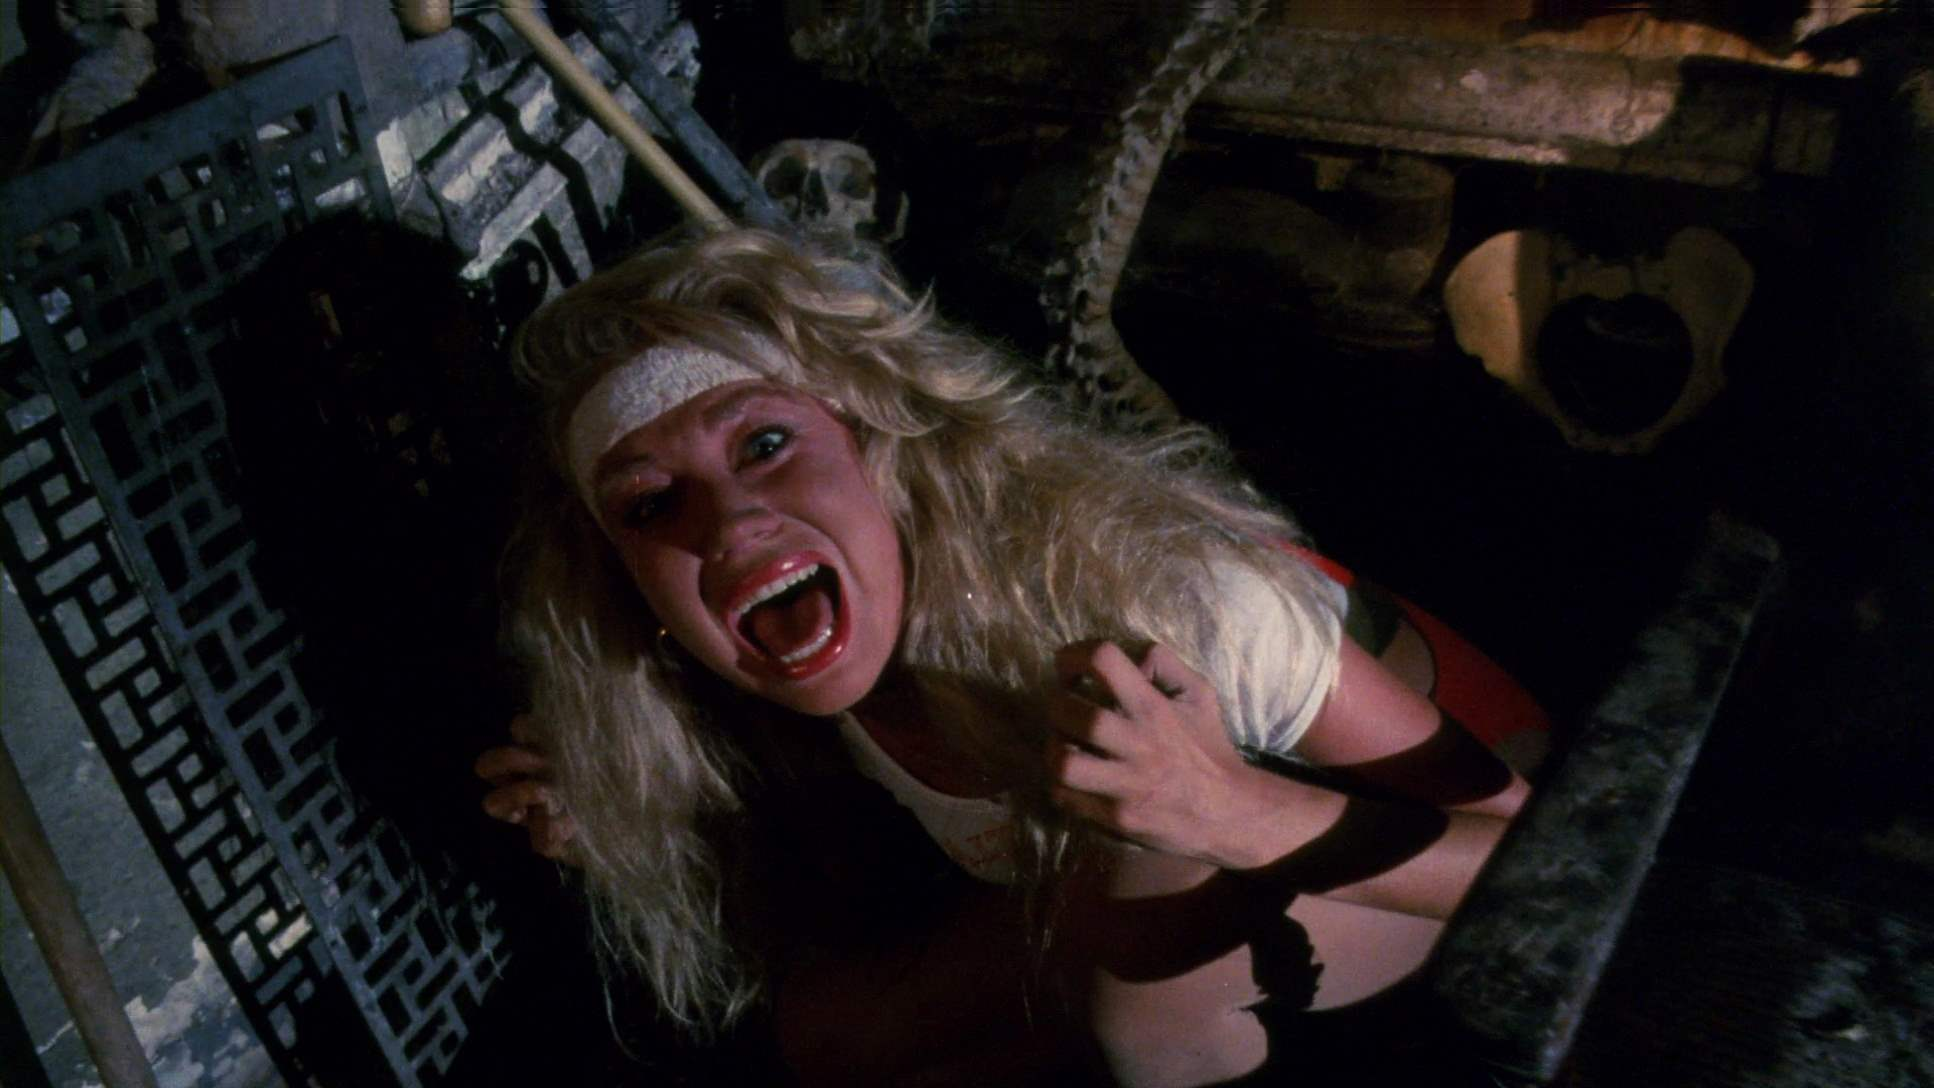 Cindy Mannion in The Toxic Avenger